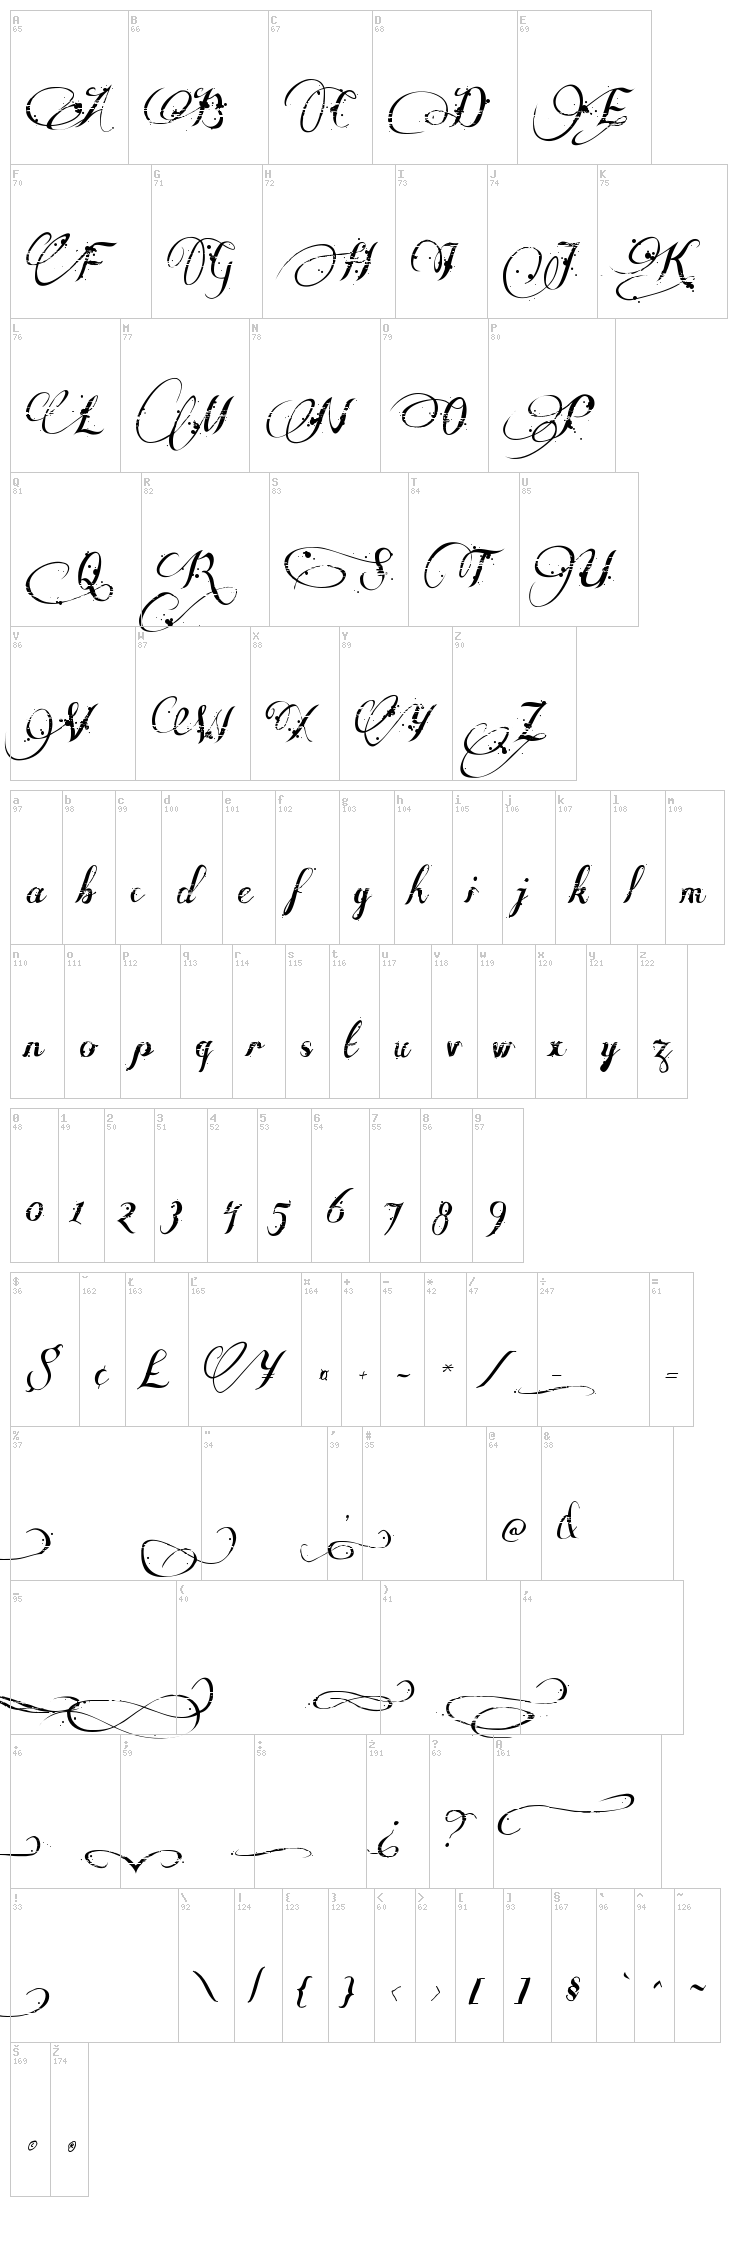 Many Weatz font map